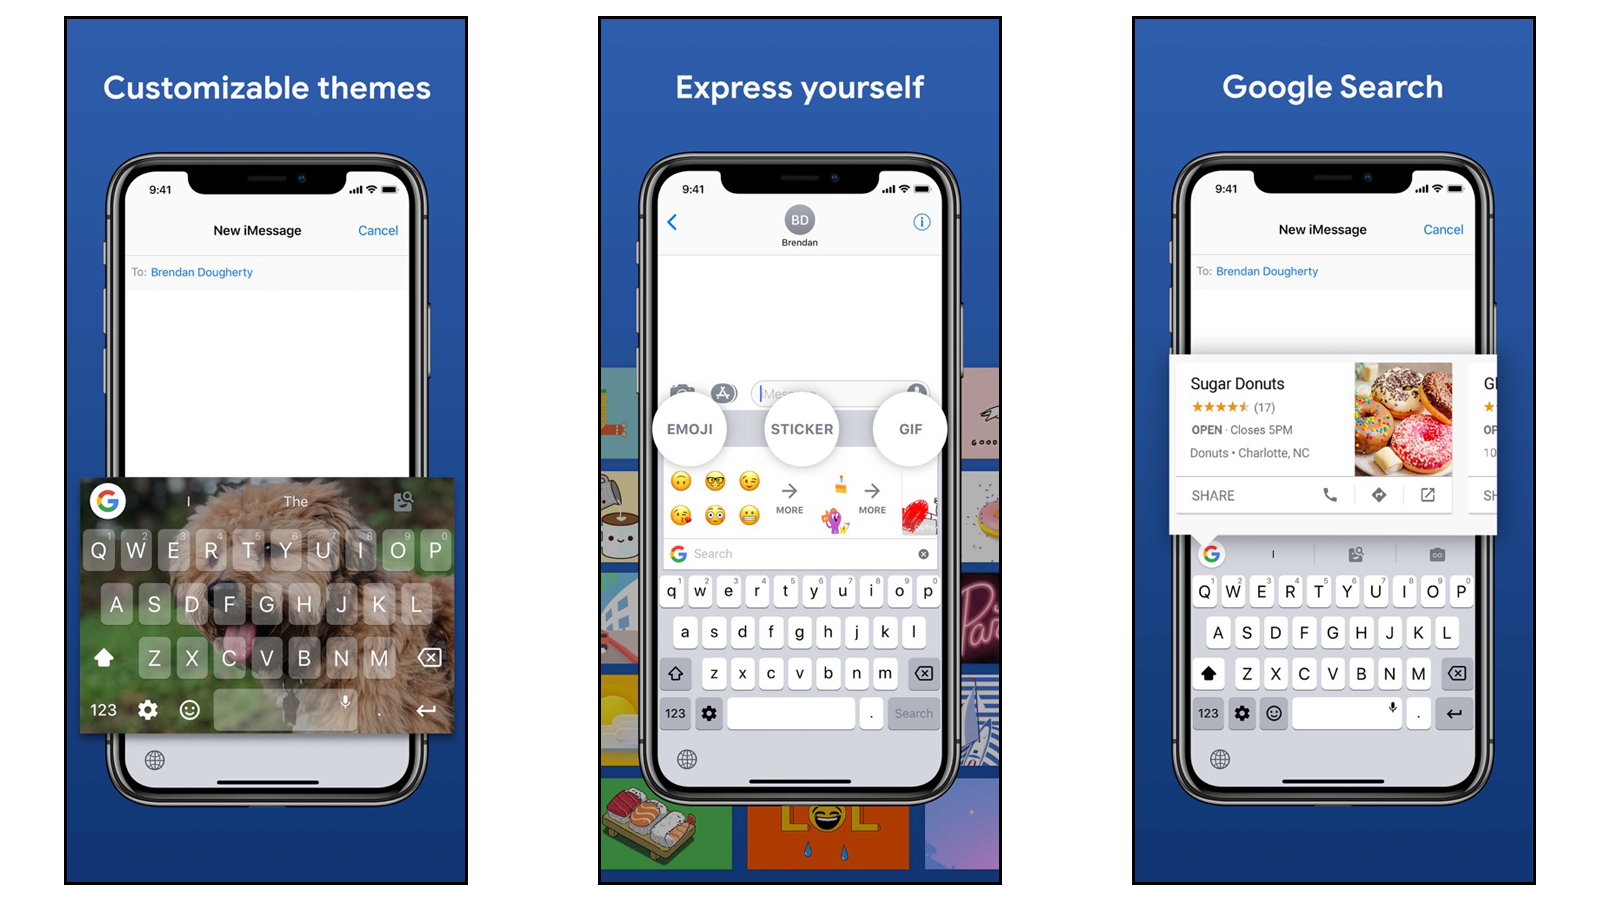 Gboard for powerful features, easy emoji searching, and more